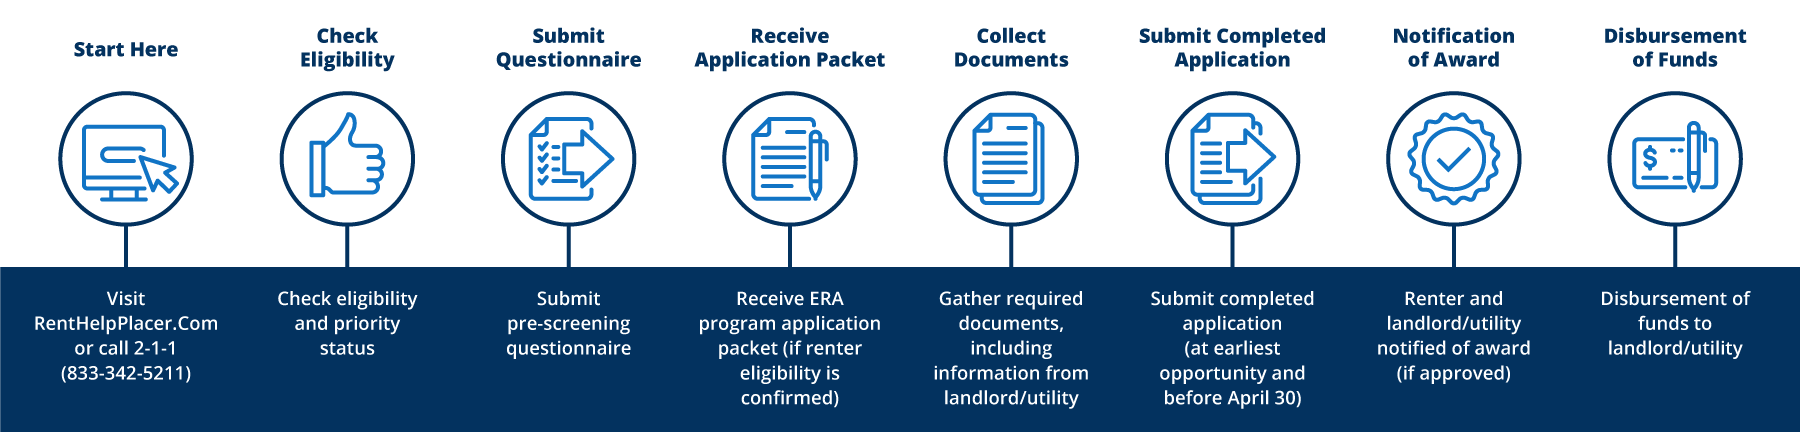 Placer County Rental Assistance Application Process Infographic